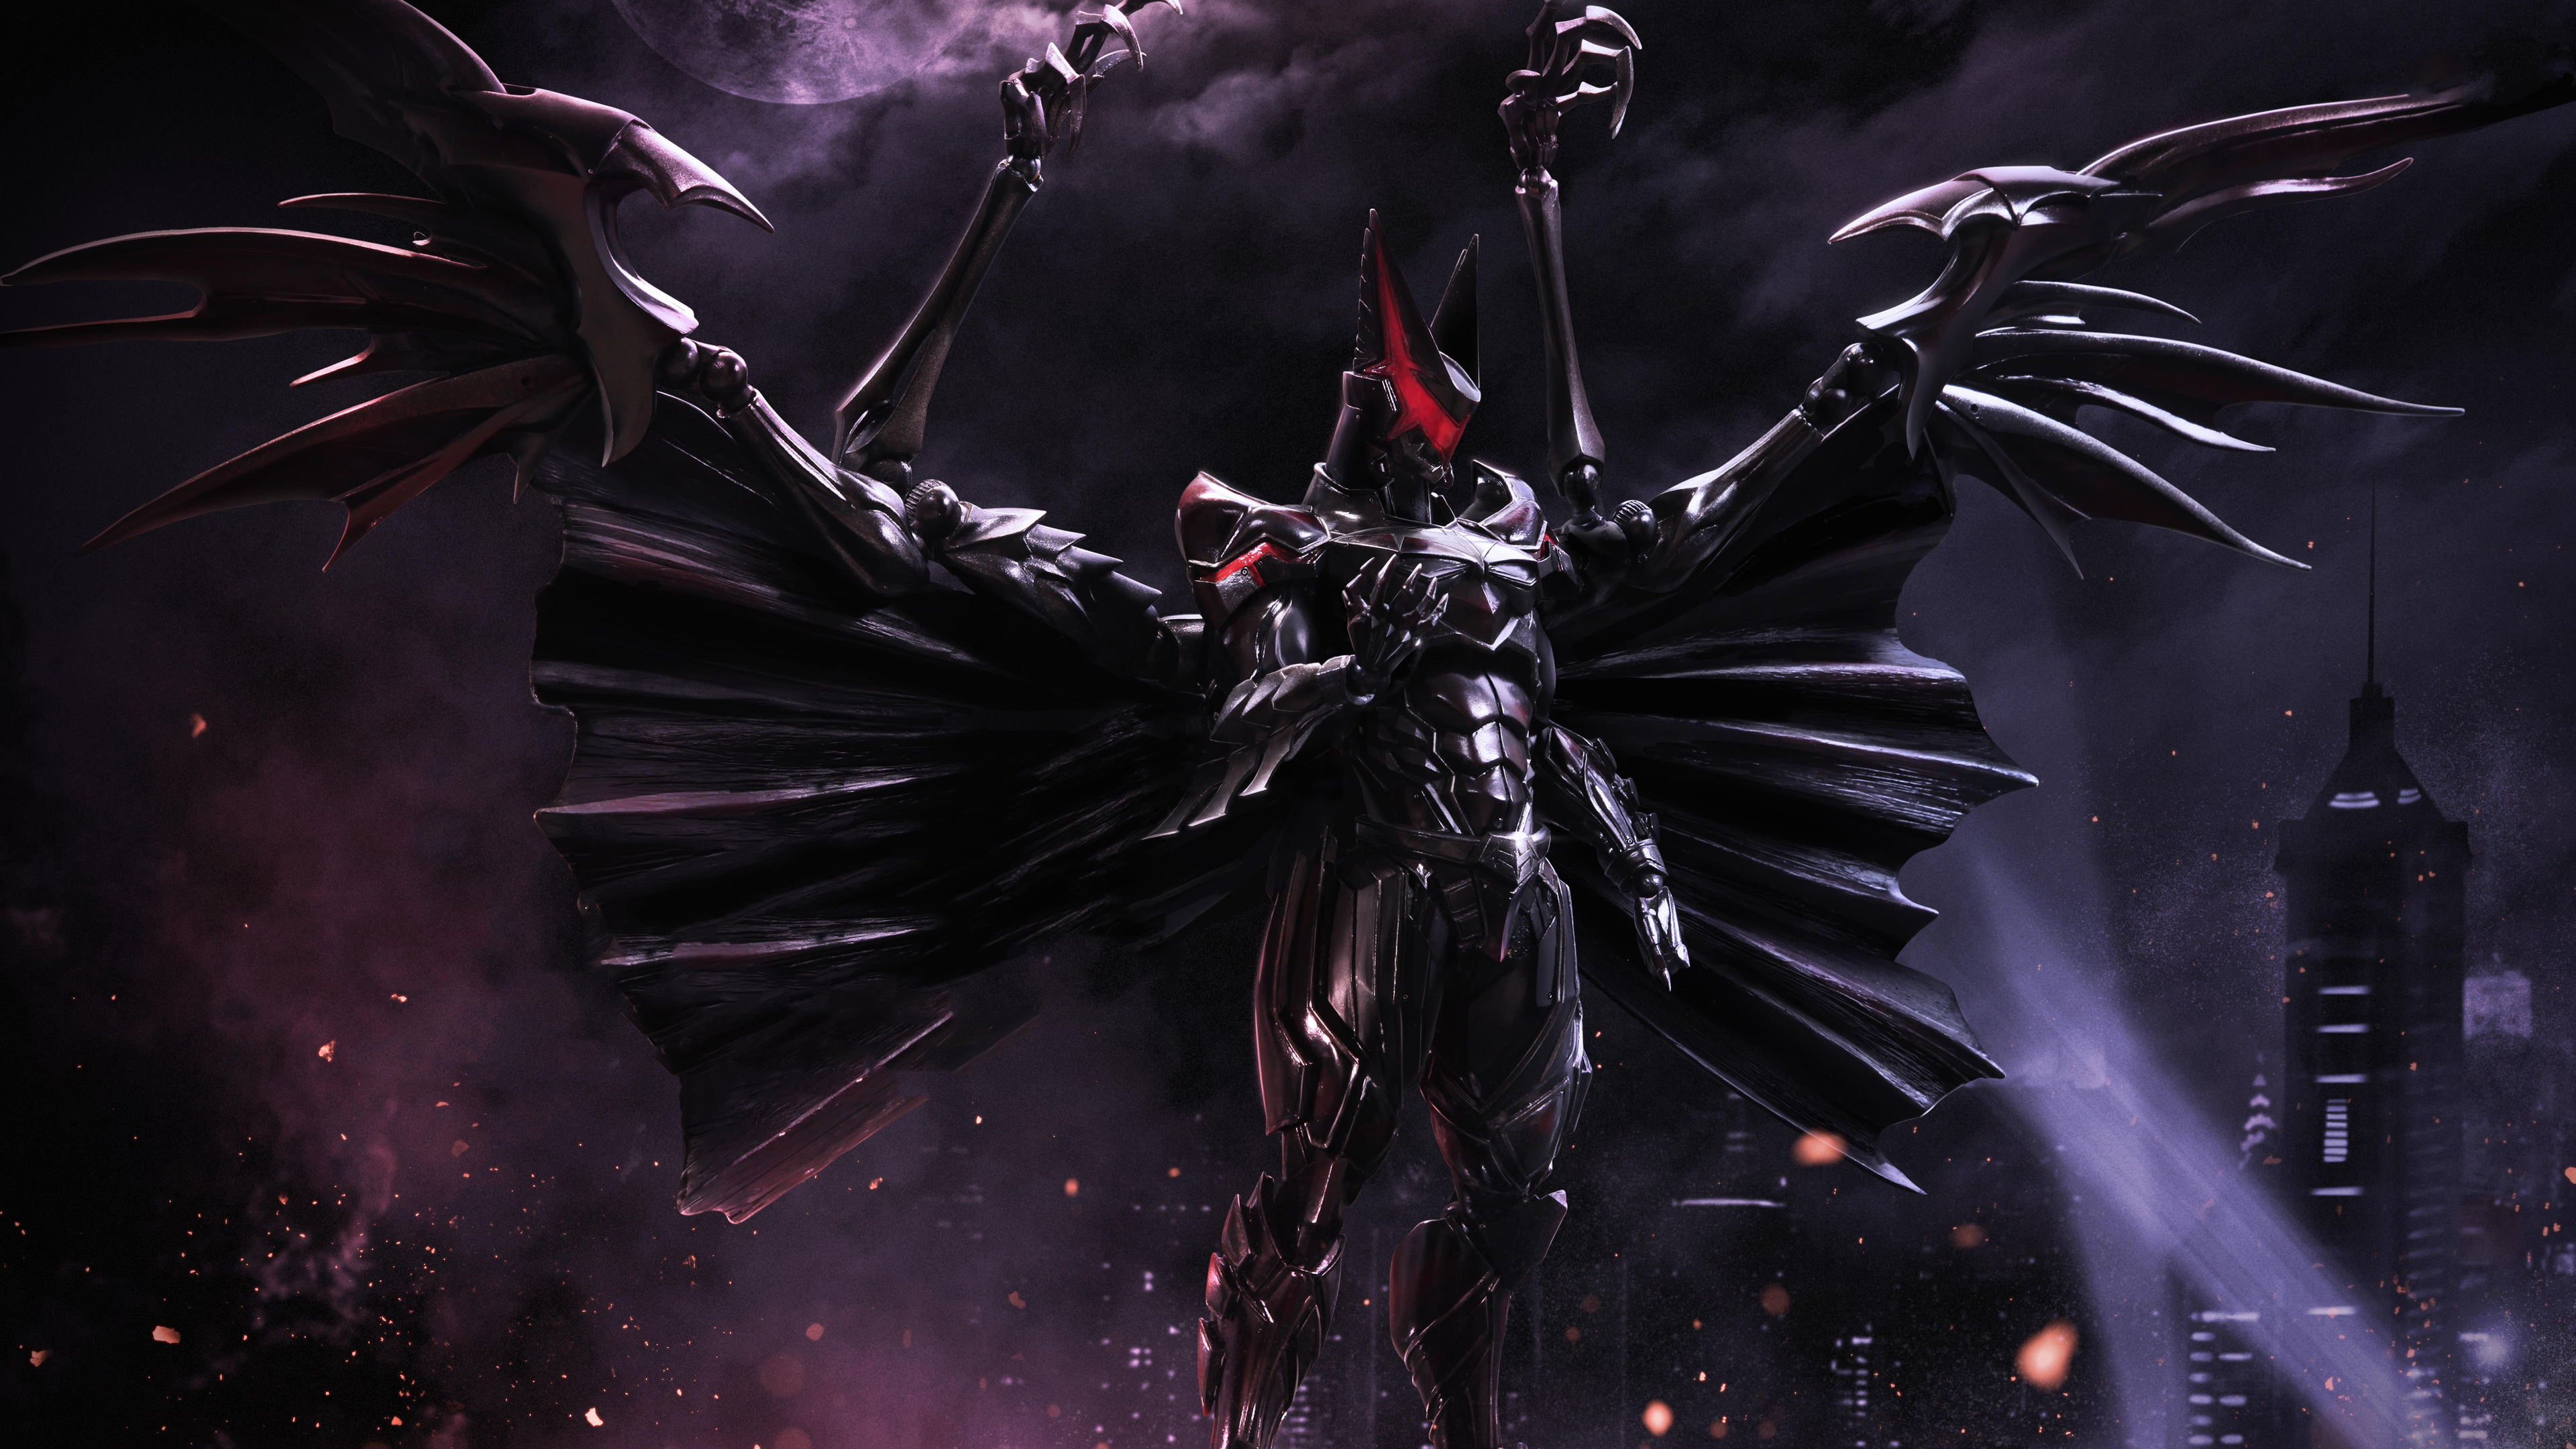 final fantasy inspired batman 5k 1536524118 - Final Fantasy Inspired Batman 5K - superheroes wallpapers, hd-wallpapers, batman wallpapers, 5k wallpapers, 4k-wallpapers